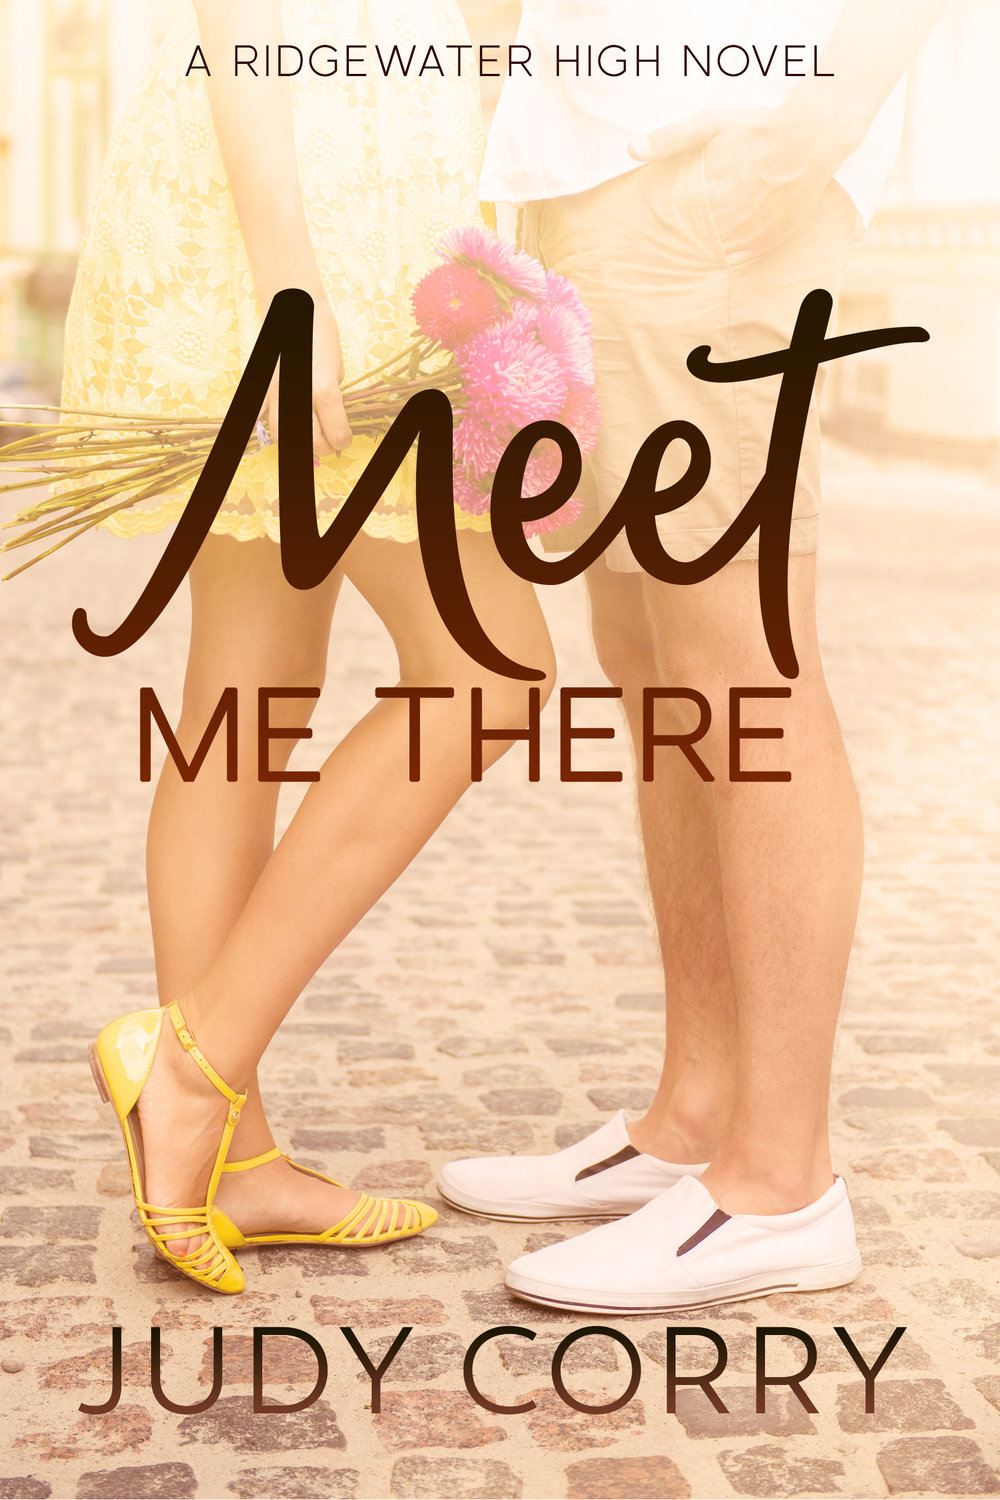 Meet-Me-There-original.jpg